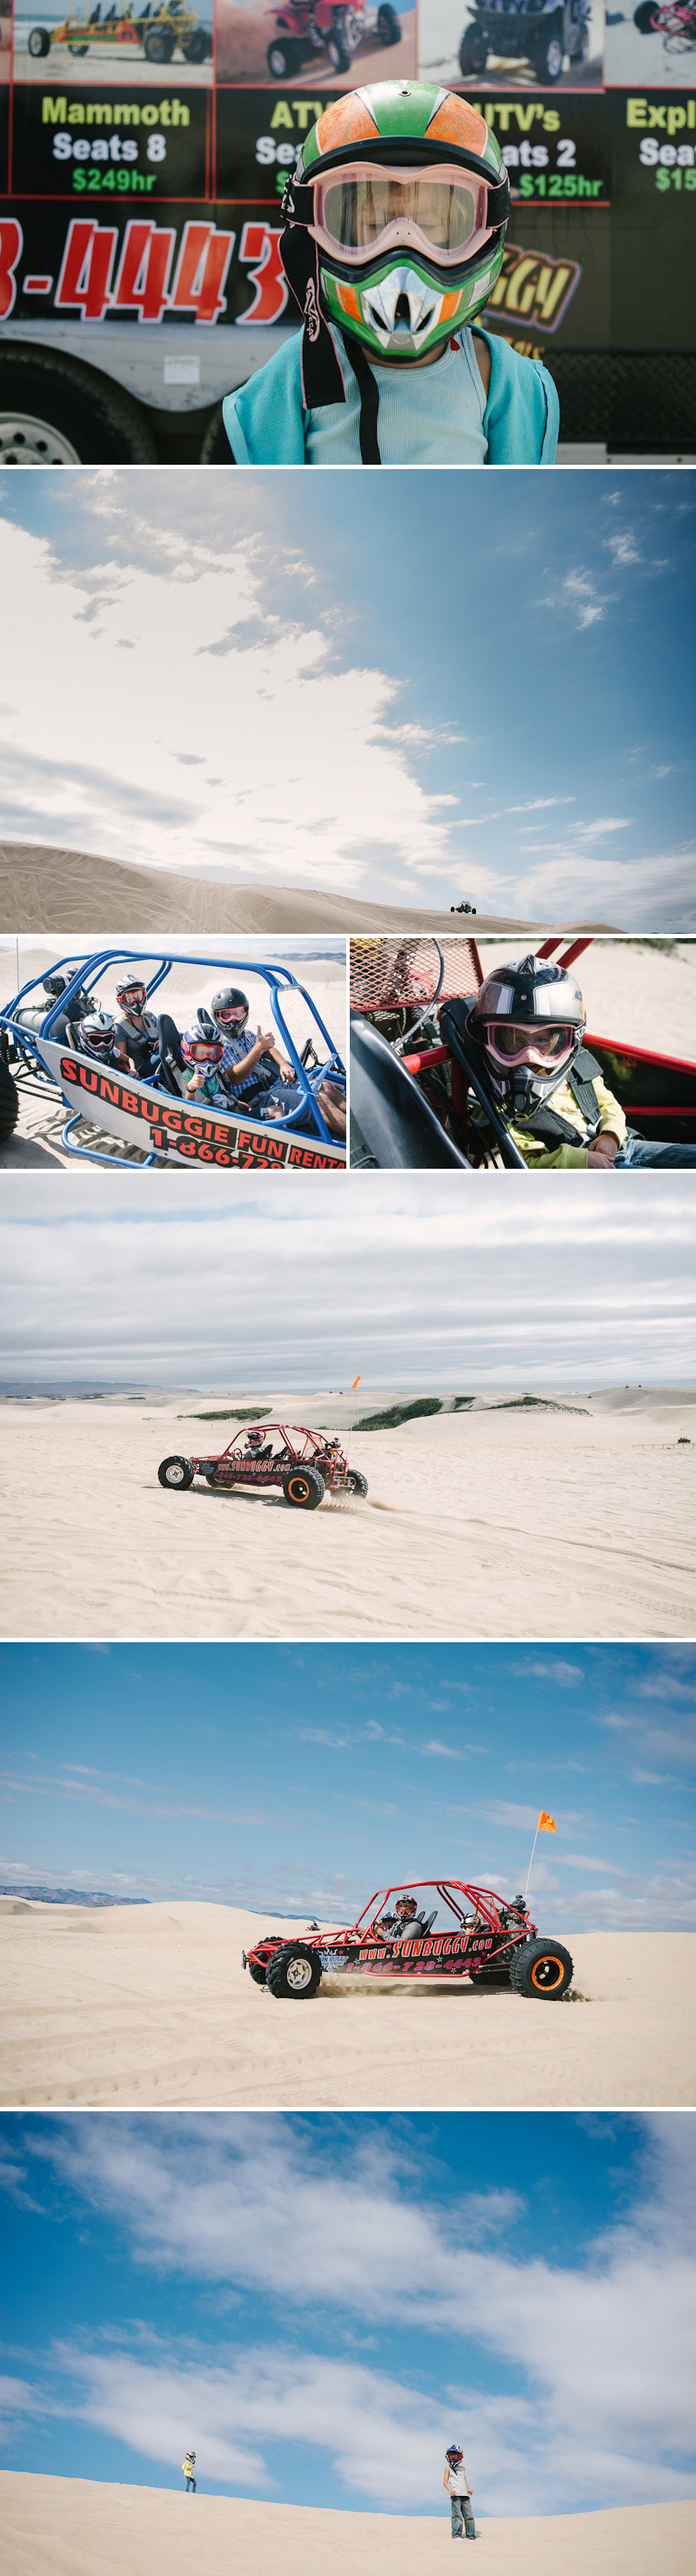 family riding dune buggies at pismo beach